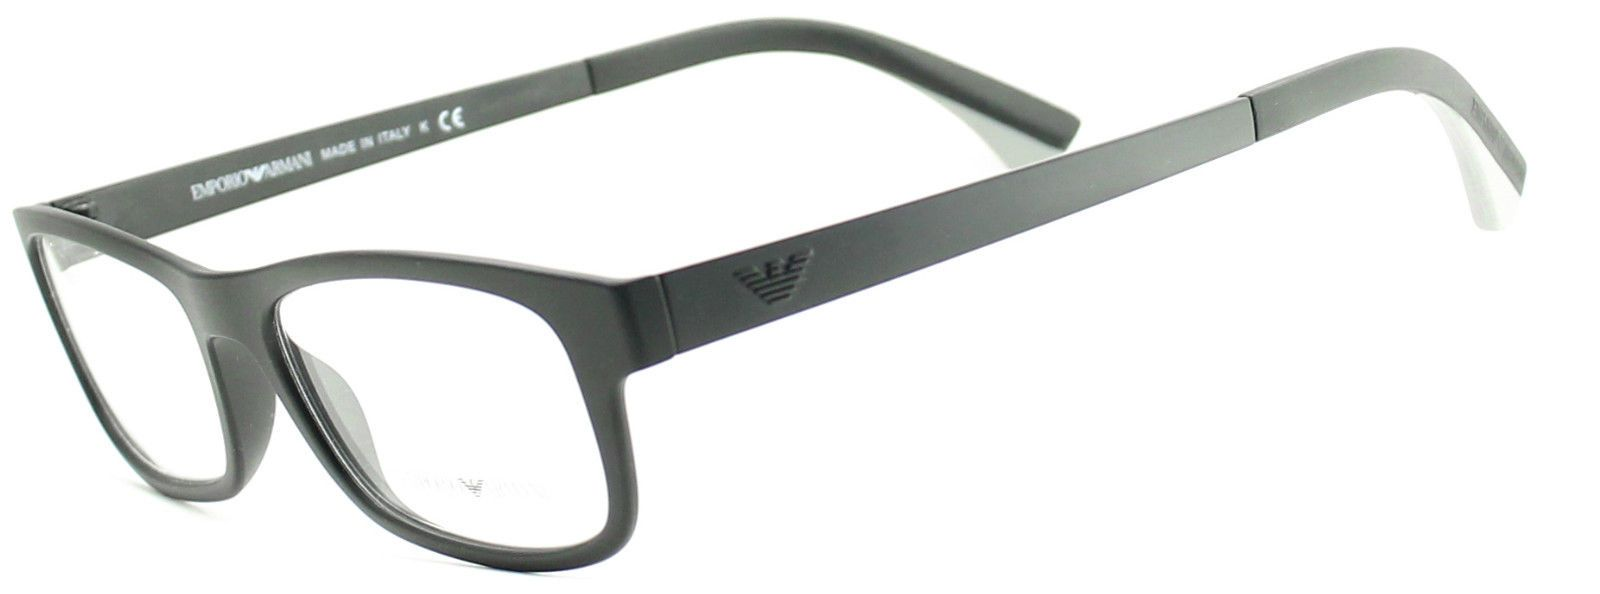 EMPORIO ARMANI EA3037 col. 5042 Eyewear FRAMES New RX Optical ...